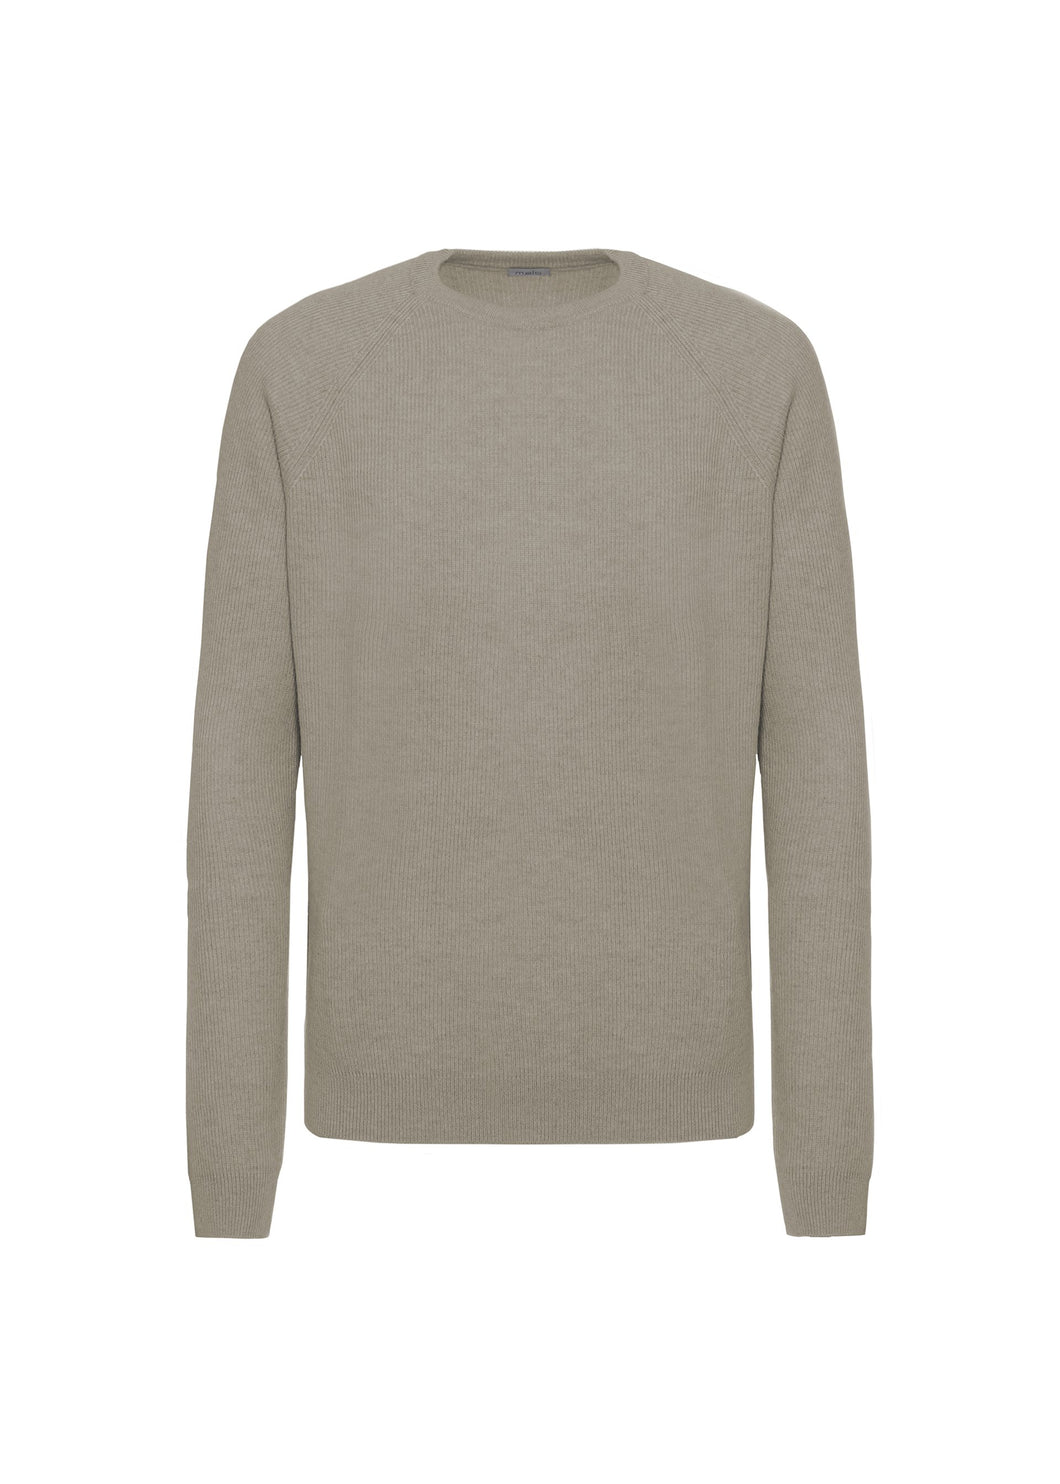 Seal half english rib crewneck sweater